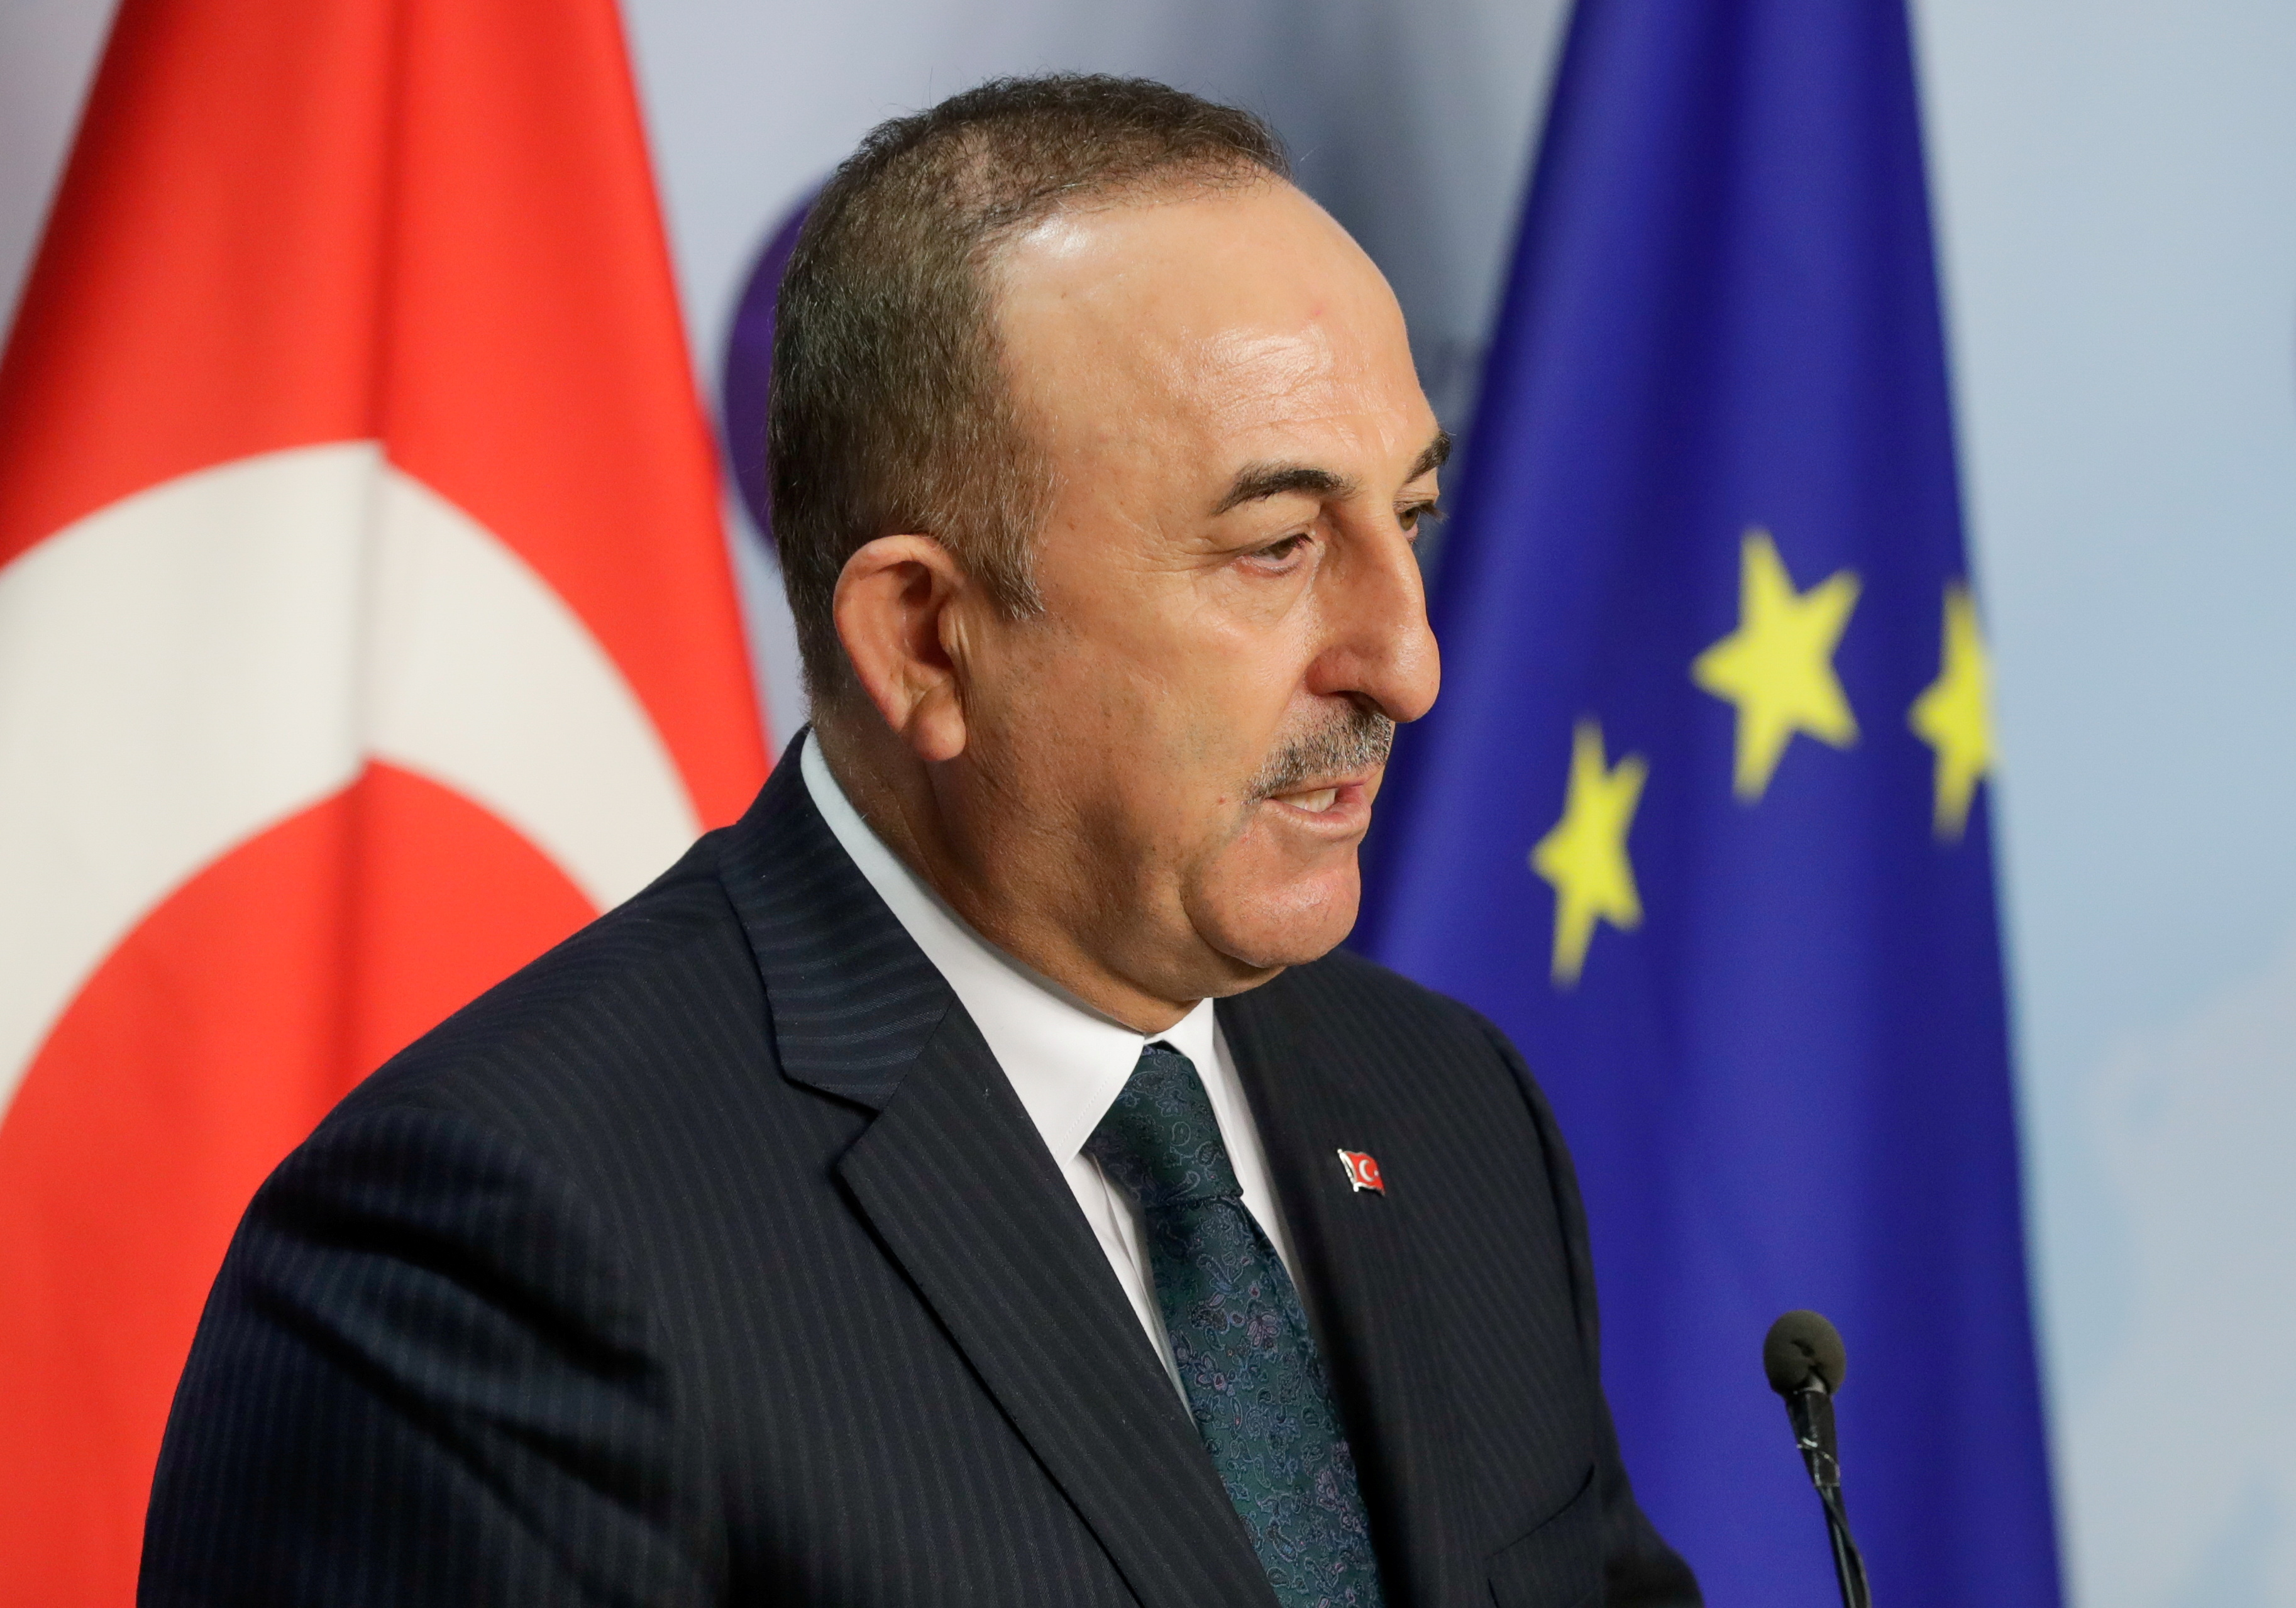 Turkish Foreign Minister Mevlut Cavusoglu speaks in Brussels, Belgium, January 21, 2021. Stephanie Lecocq/Pool via REUTERS